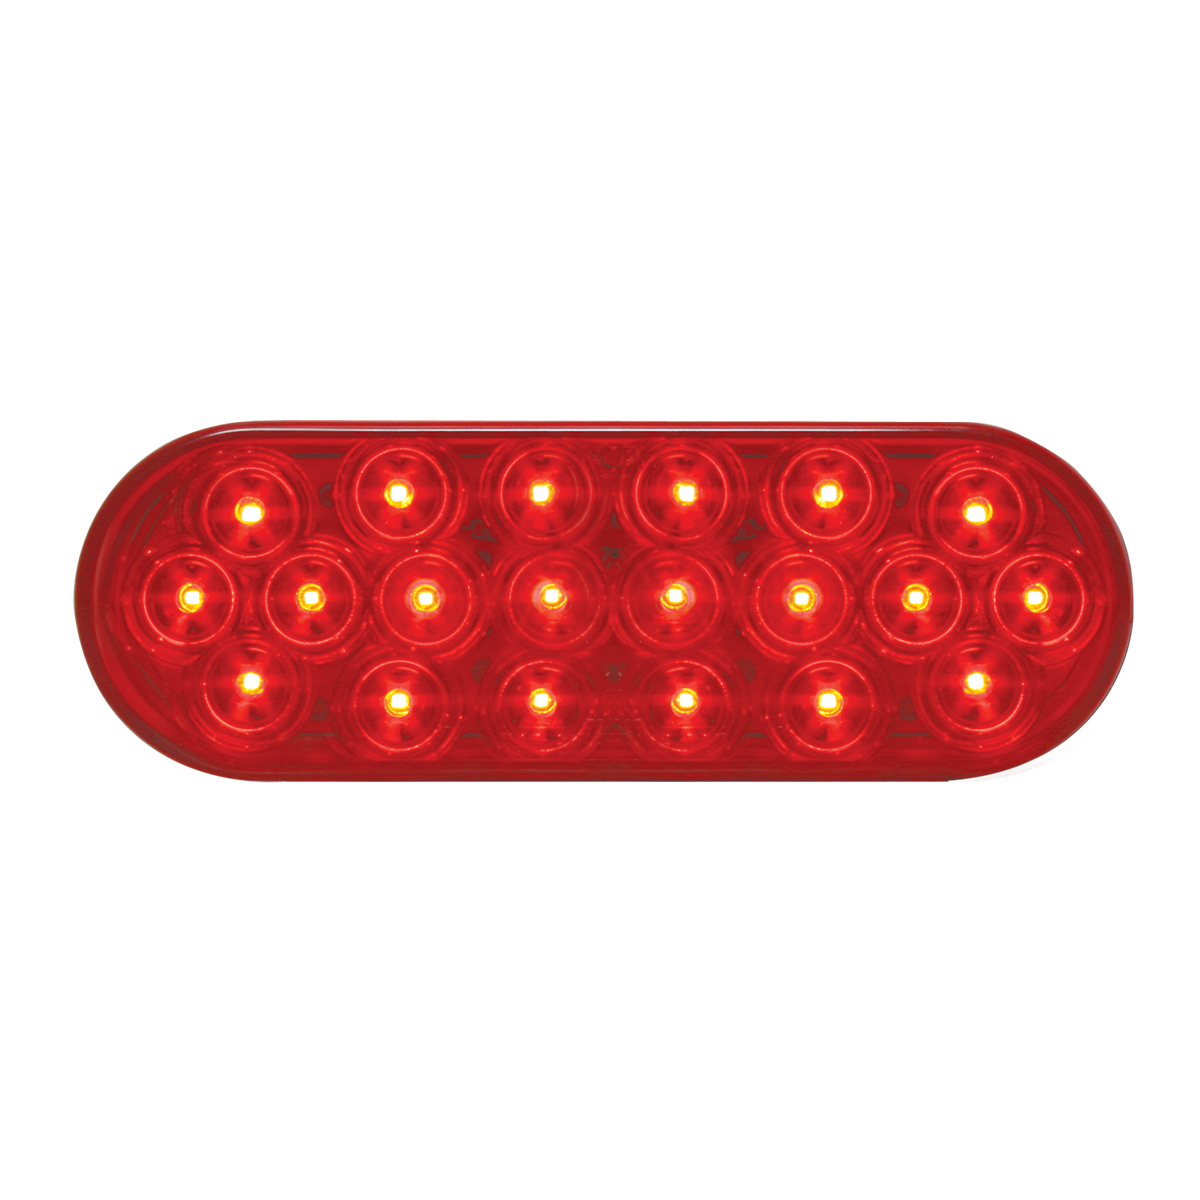 #87721 Oval Fleet LED Flat Red/Red Light